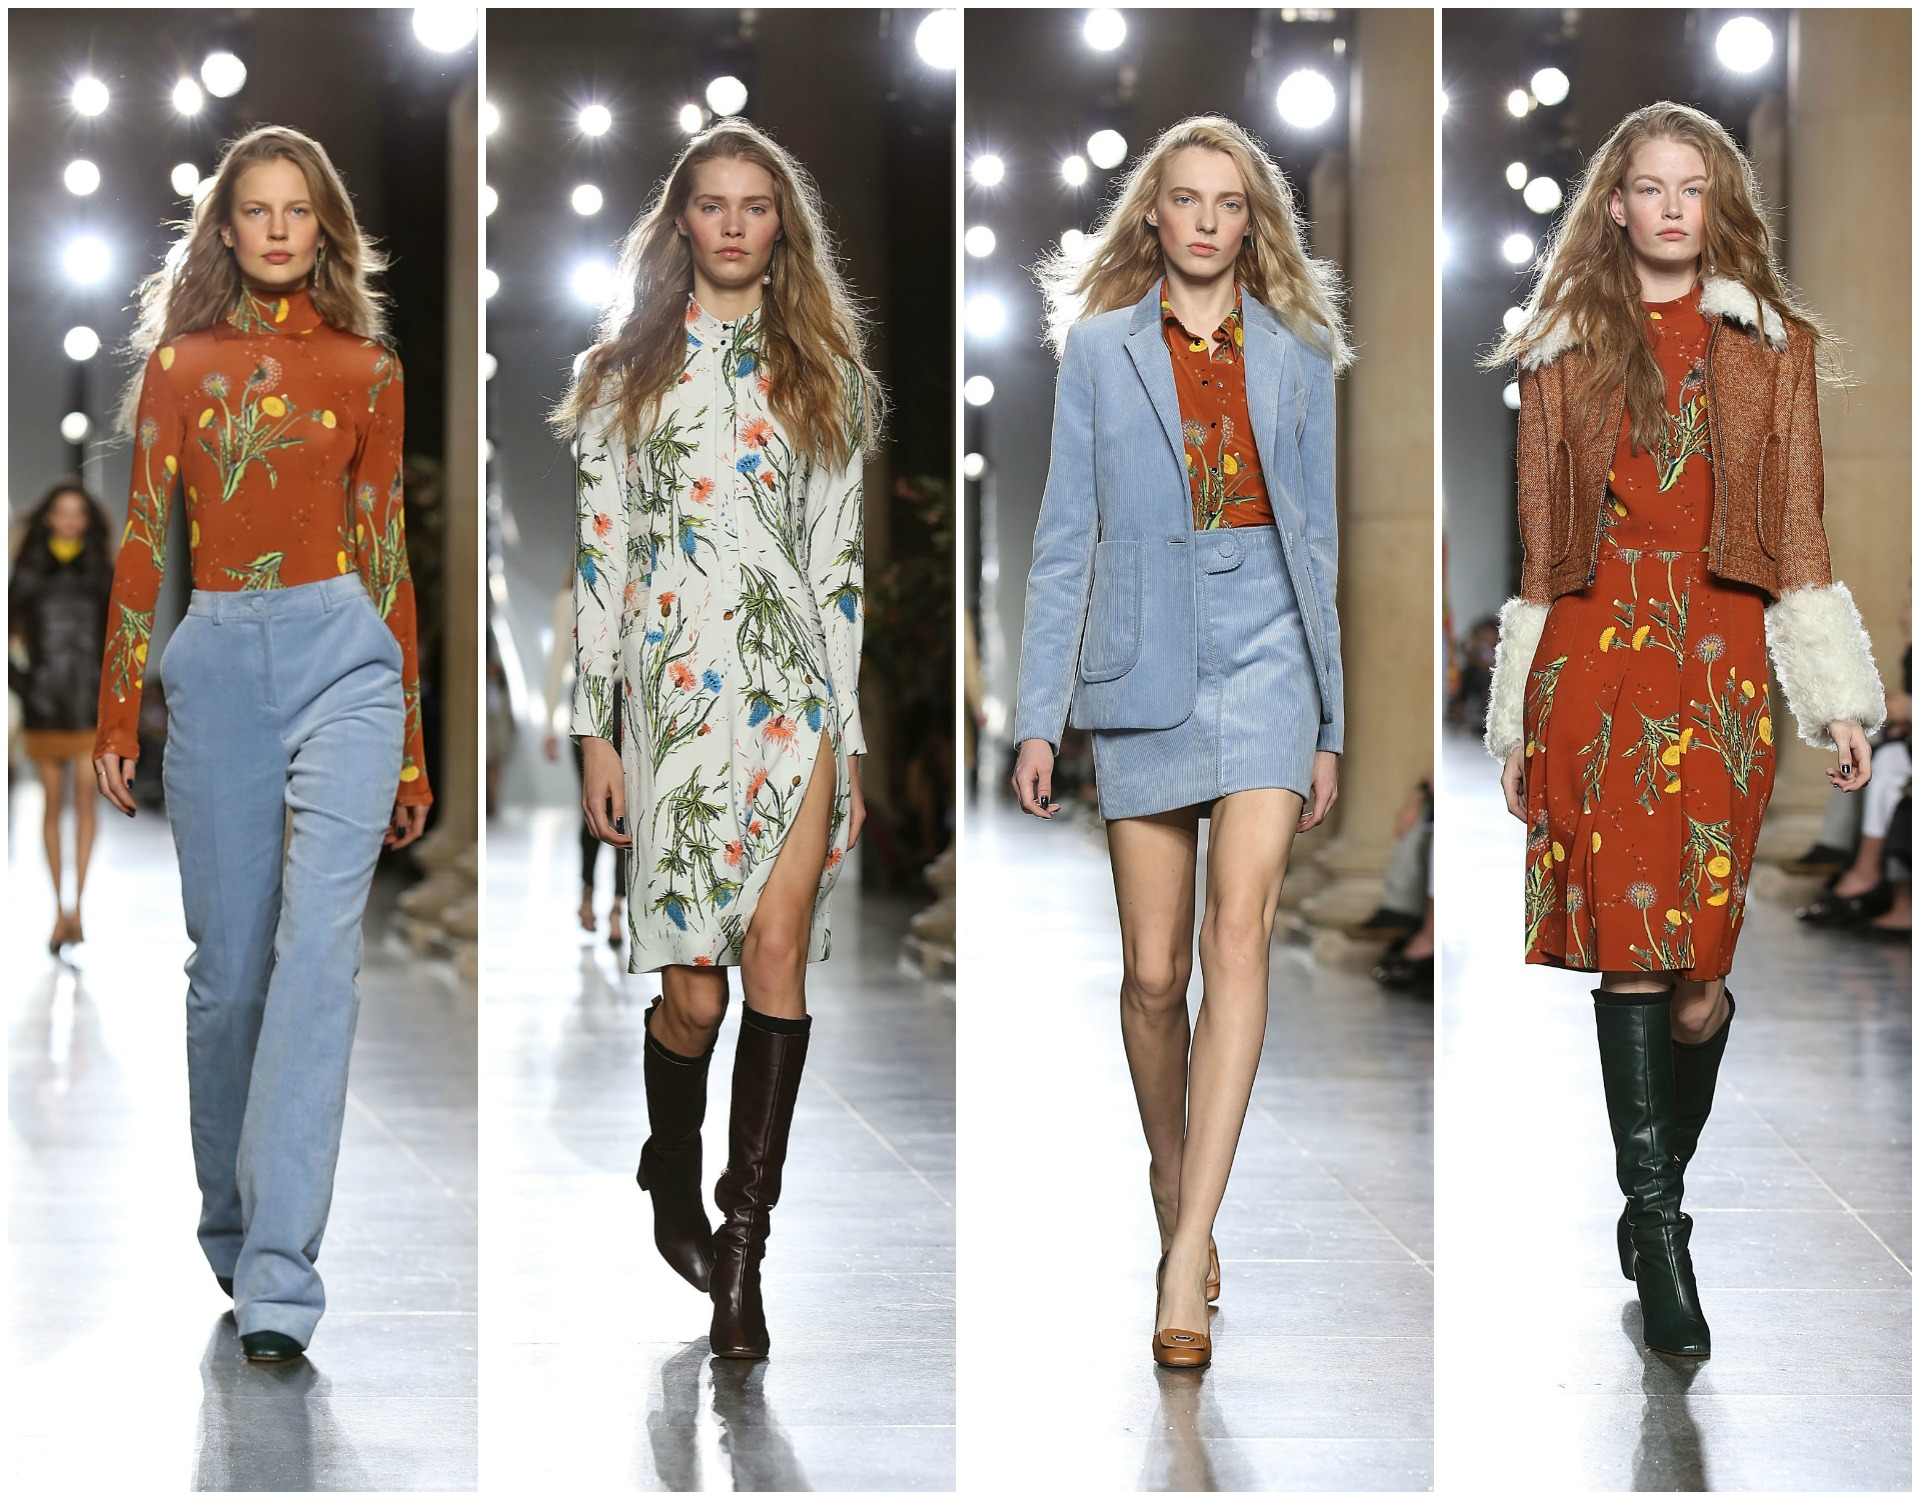 Topshop Unique at London Fashion Week AW15